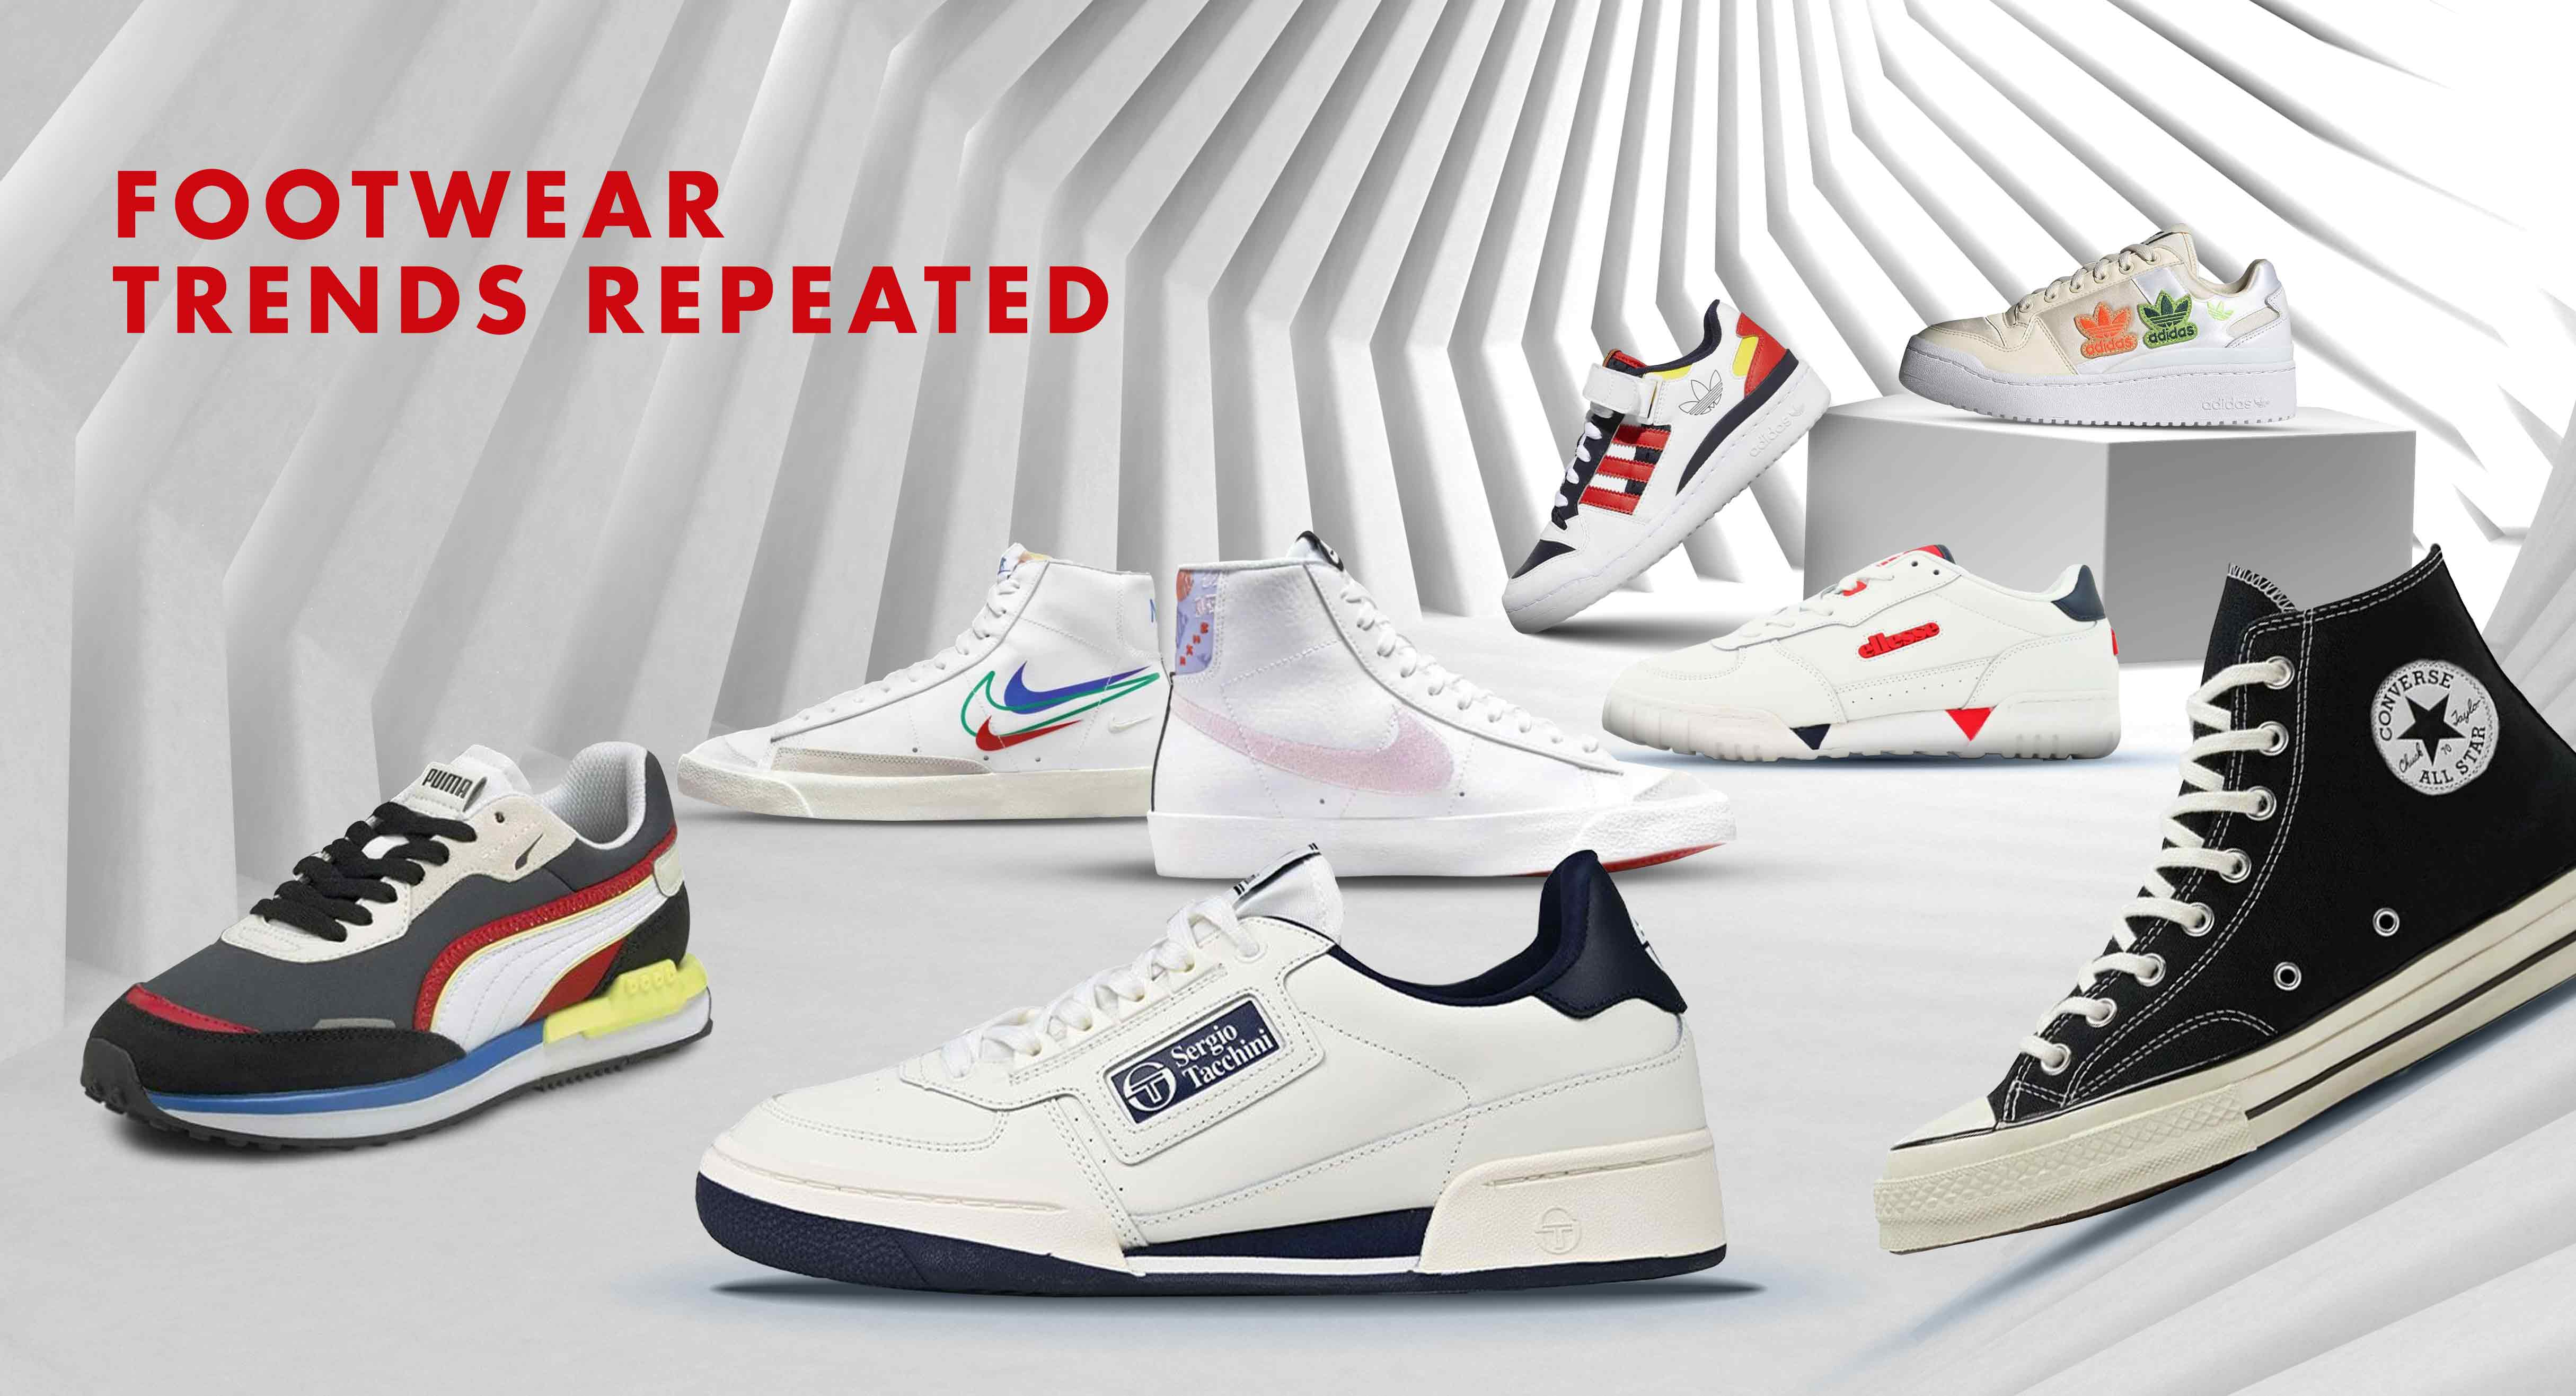 Footwear Trends Repeated – Old Cool is the New Cool